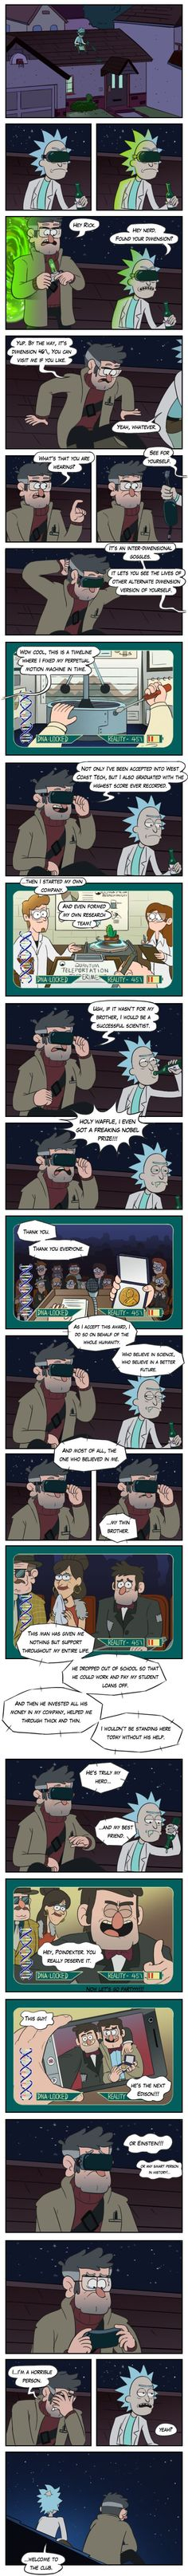 Crossover Rick and Morty & Gravity Falls: